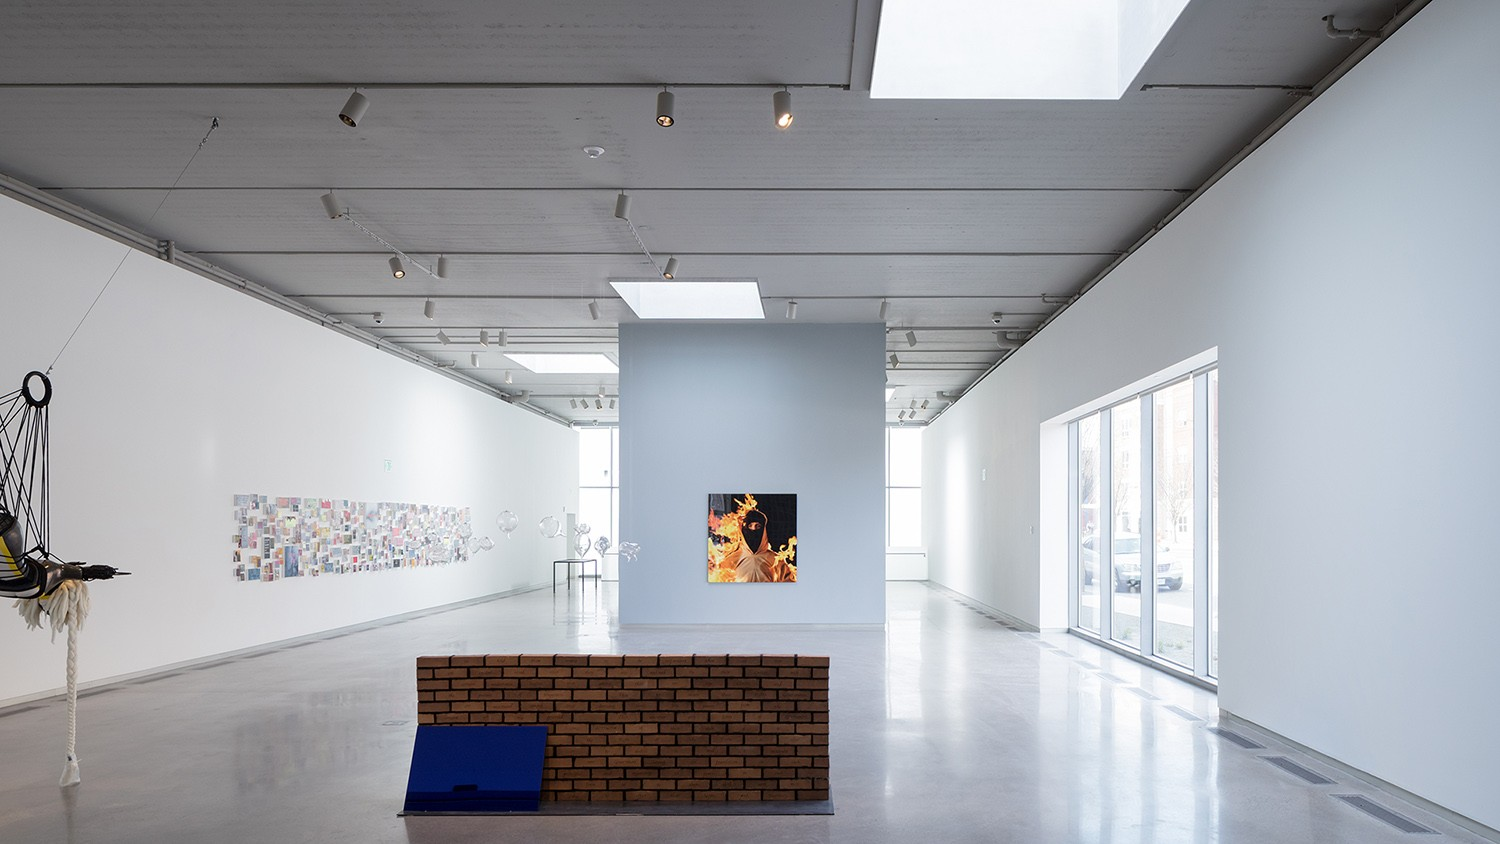 https://s3.us-east-2.amazonaws.com/steven-holl/uploads/projects/project-images/IwanBaan_ICA_VCU_18-03SHA3737_WH.jpg